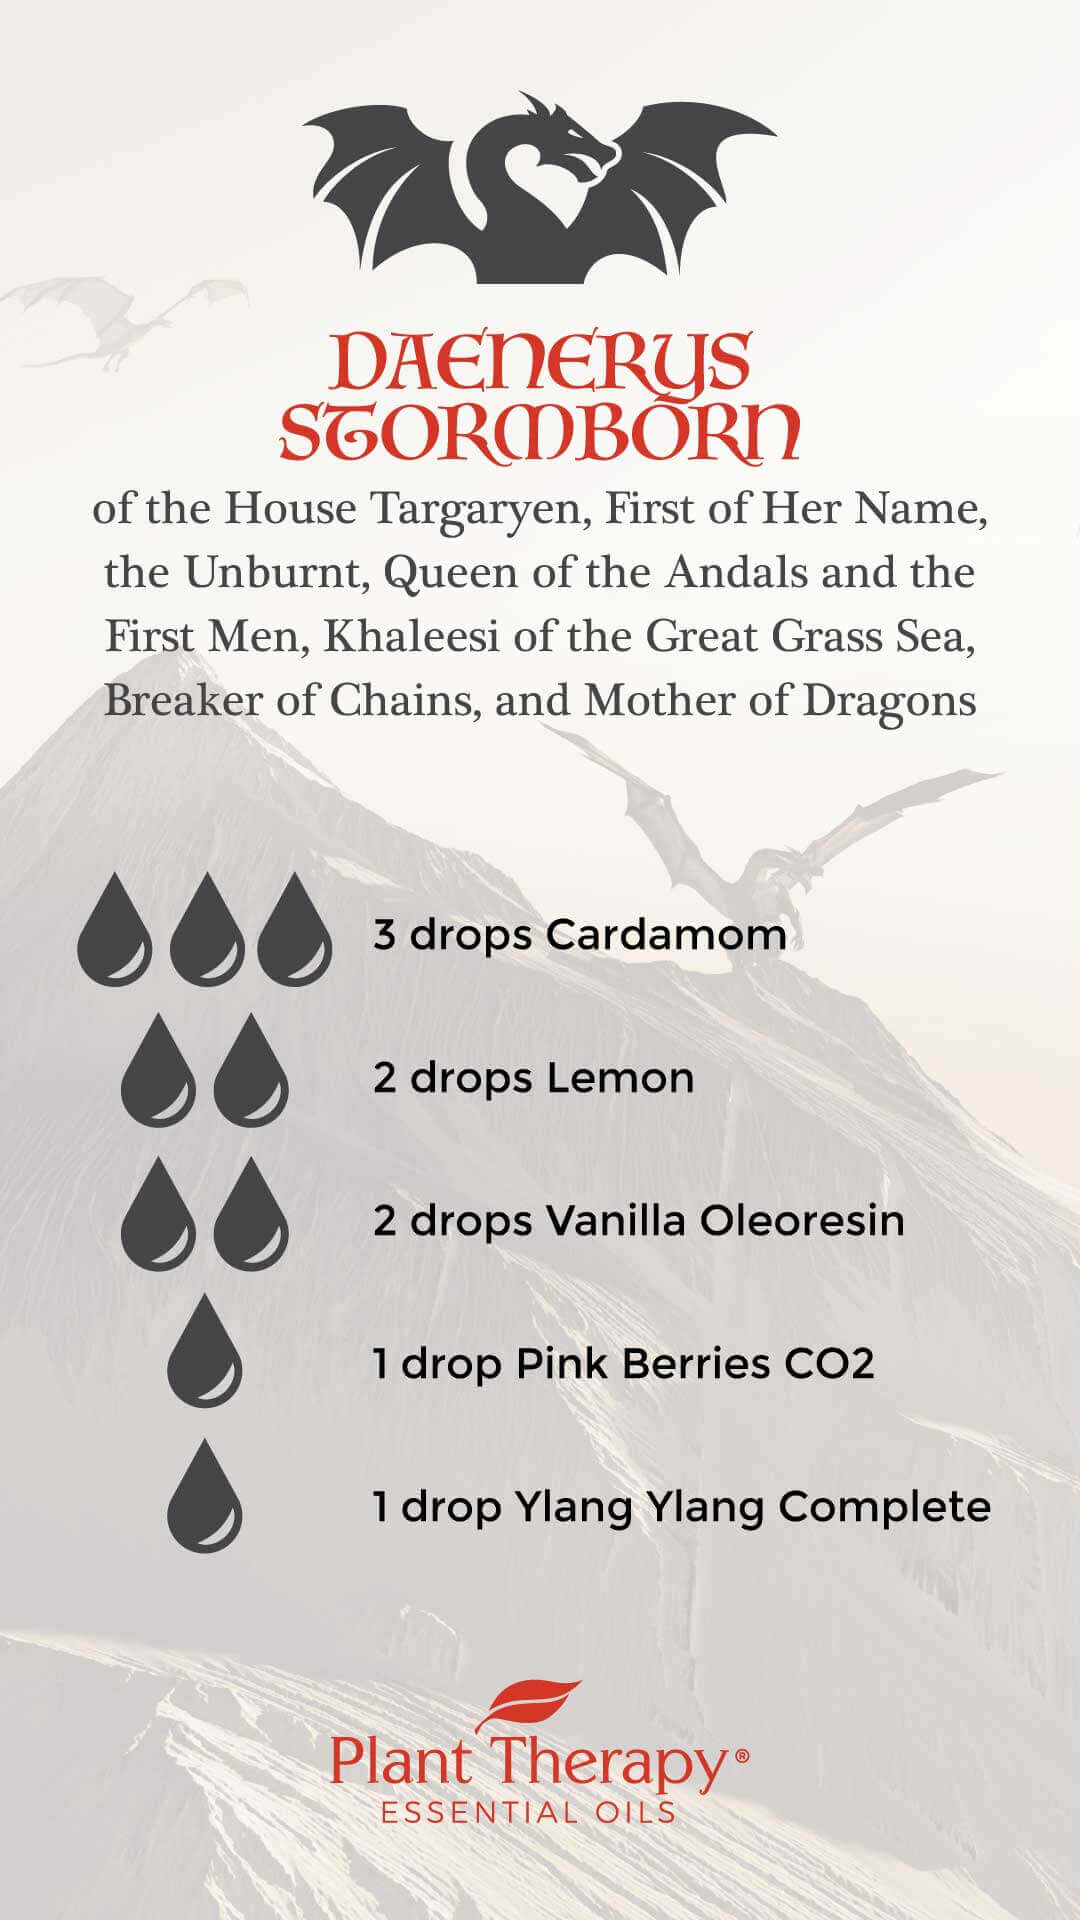 Game of Thrones Daenerys Diffuser Blend